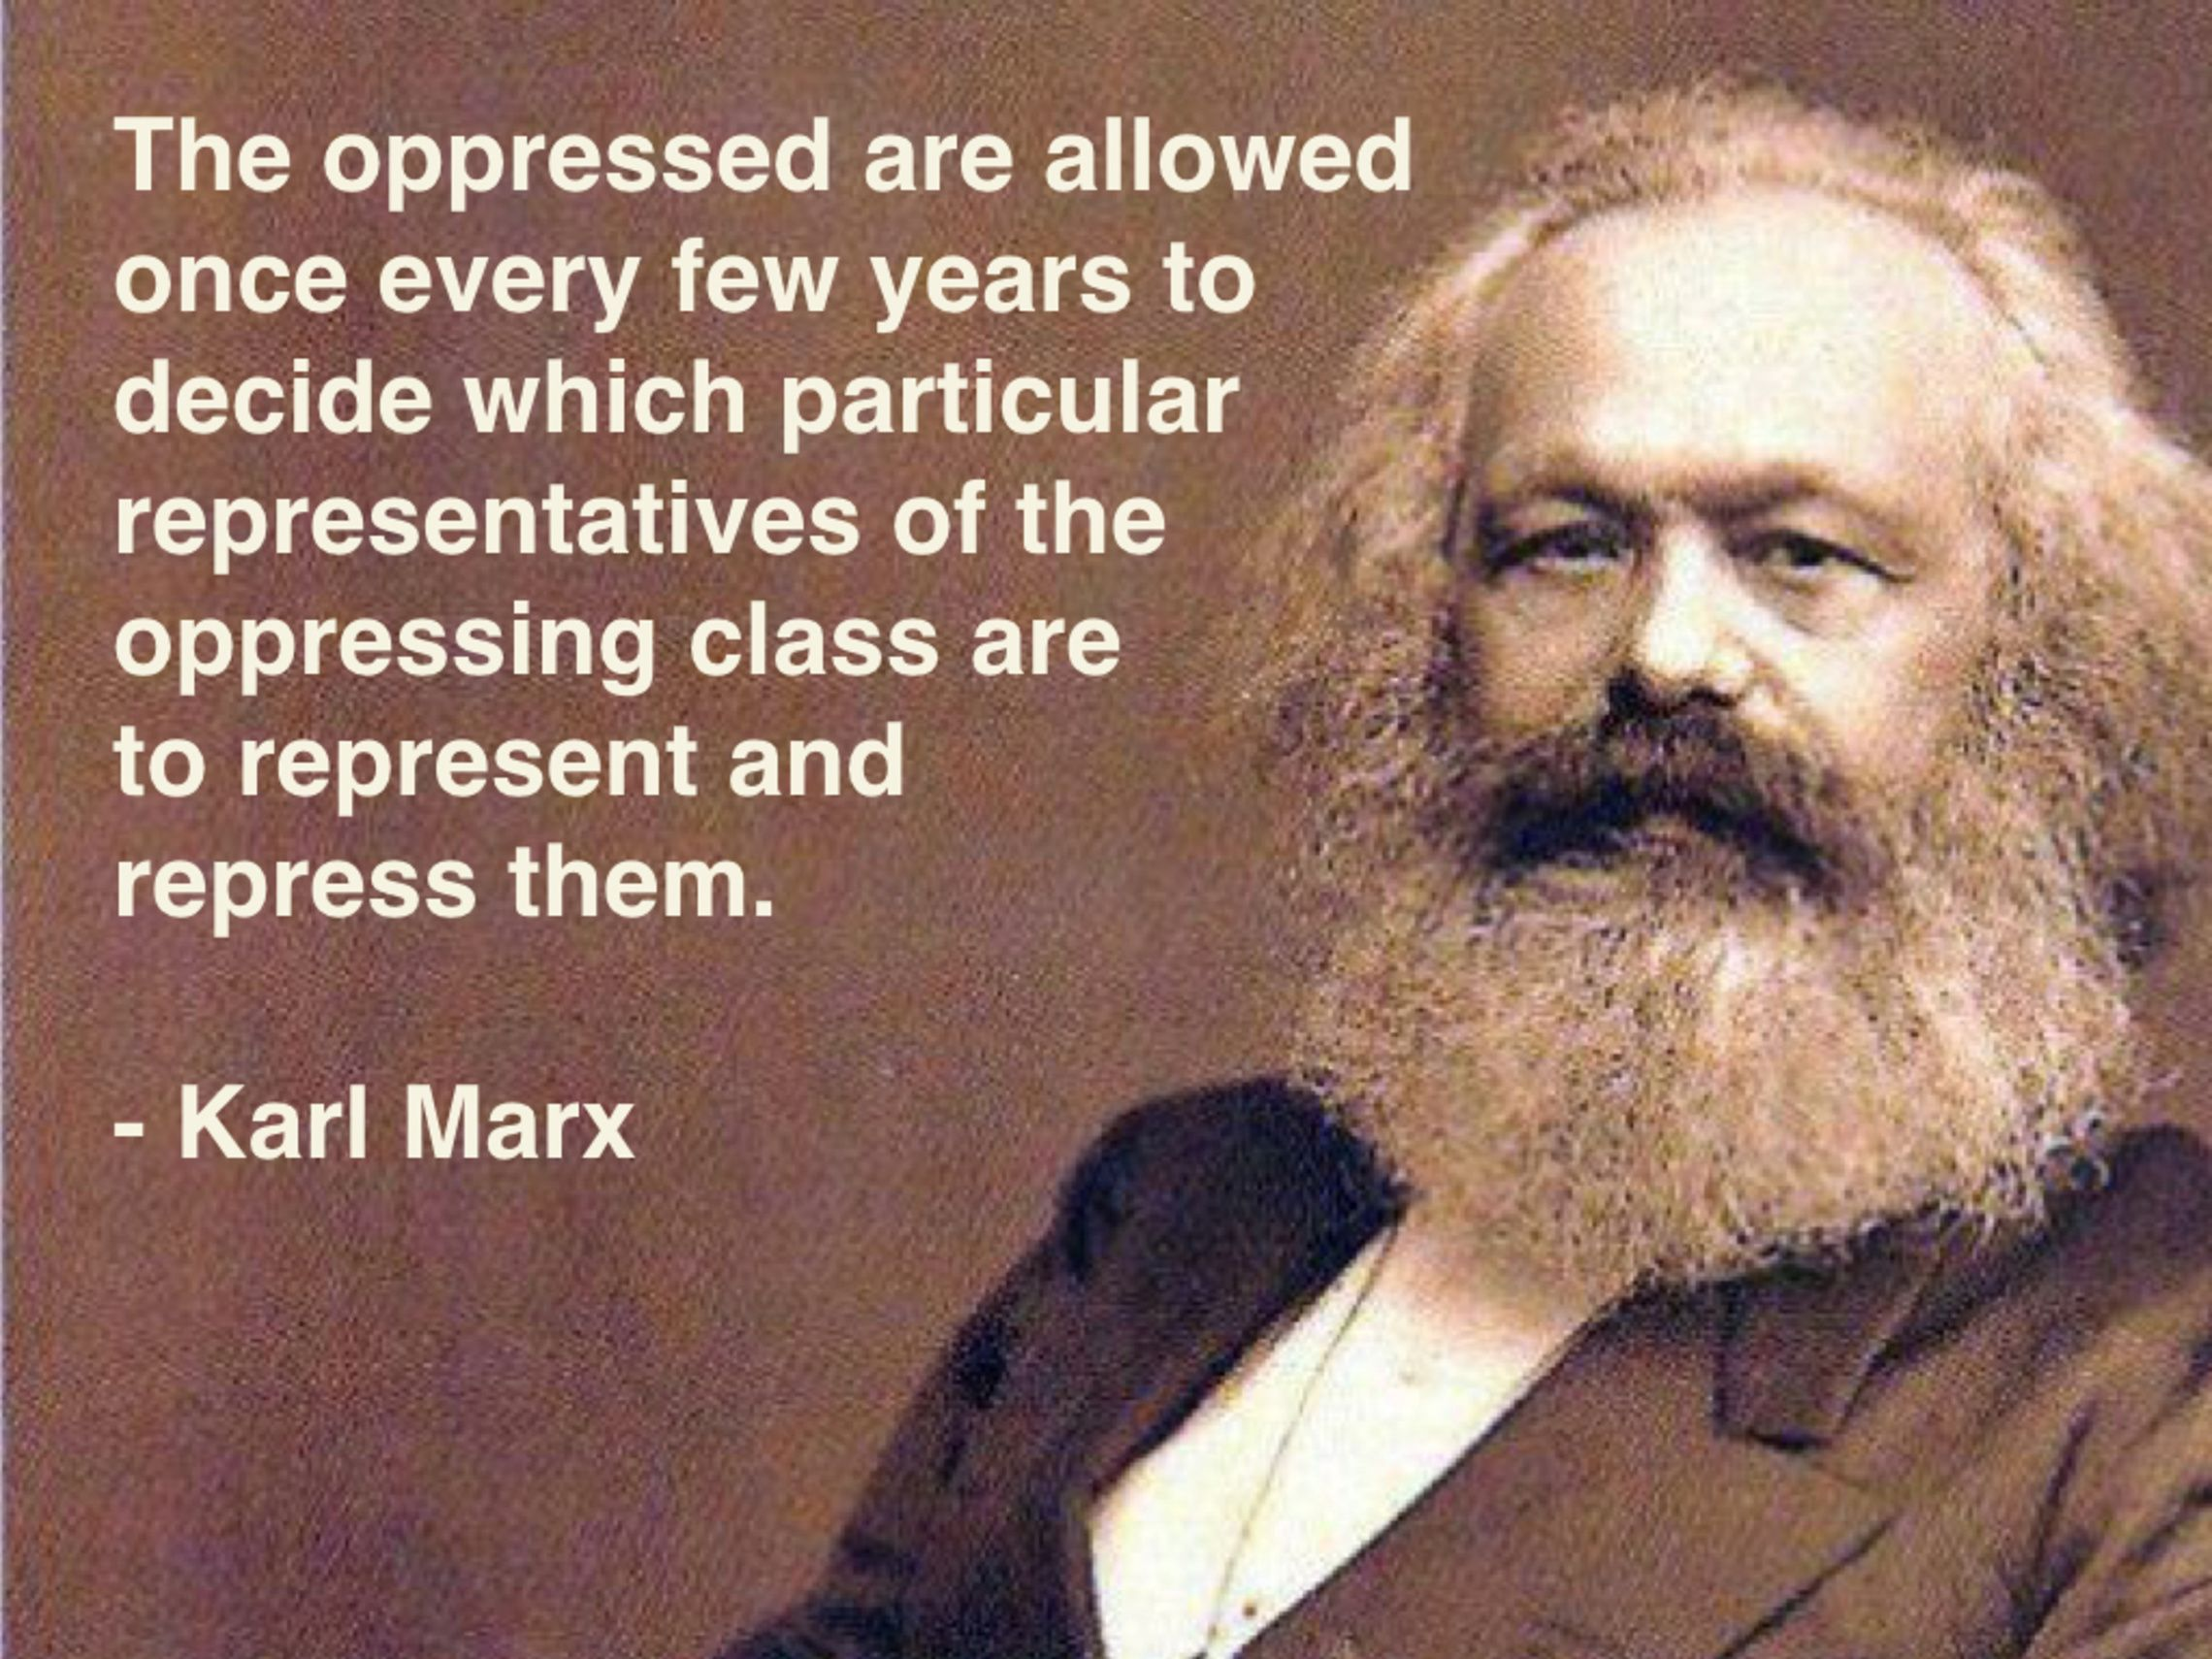 was karl marx historys greatest optimist essay On the jewish question is a work by karl marx, written in 1843, and first published in paris in 1844 under the german title zur judenfrage in the deutsch–französische jahrbücher it was one of marx's first attempts to develop what would later be called the materialist conception of history .